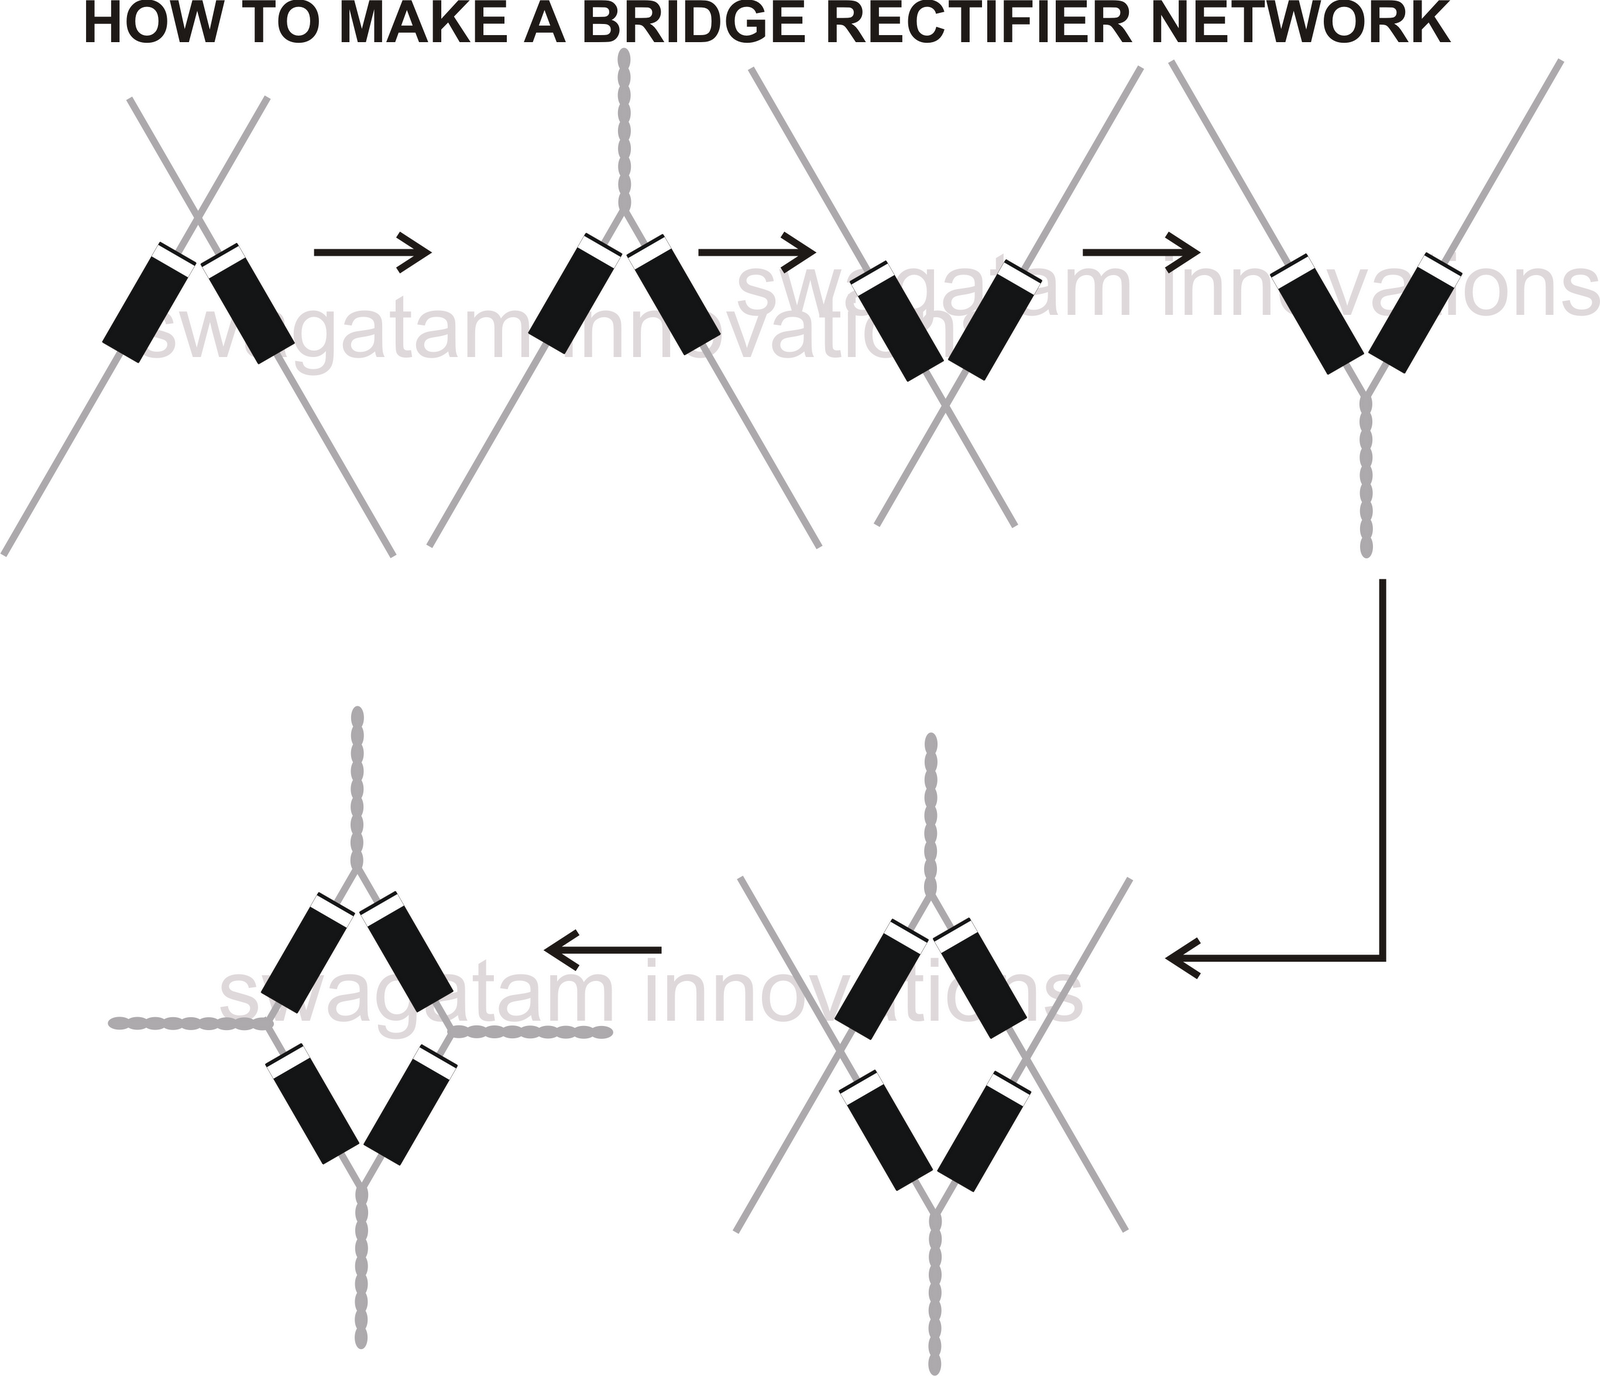 here we learn the basic working principle of rectifier diodes such as a 1n4007 or a 1n5408  and